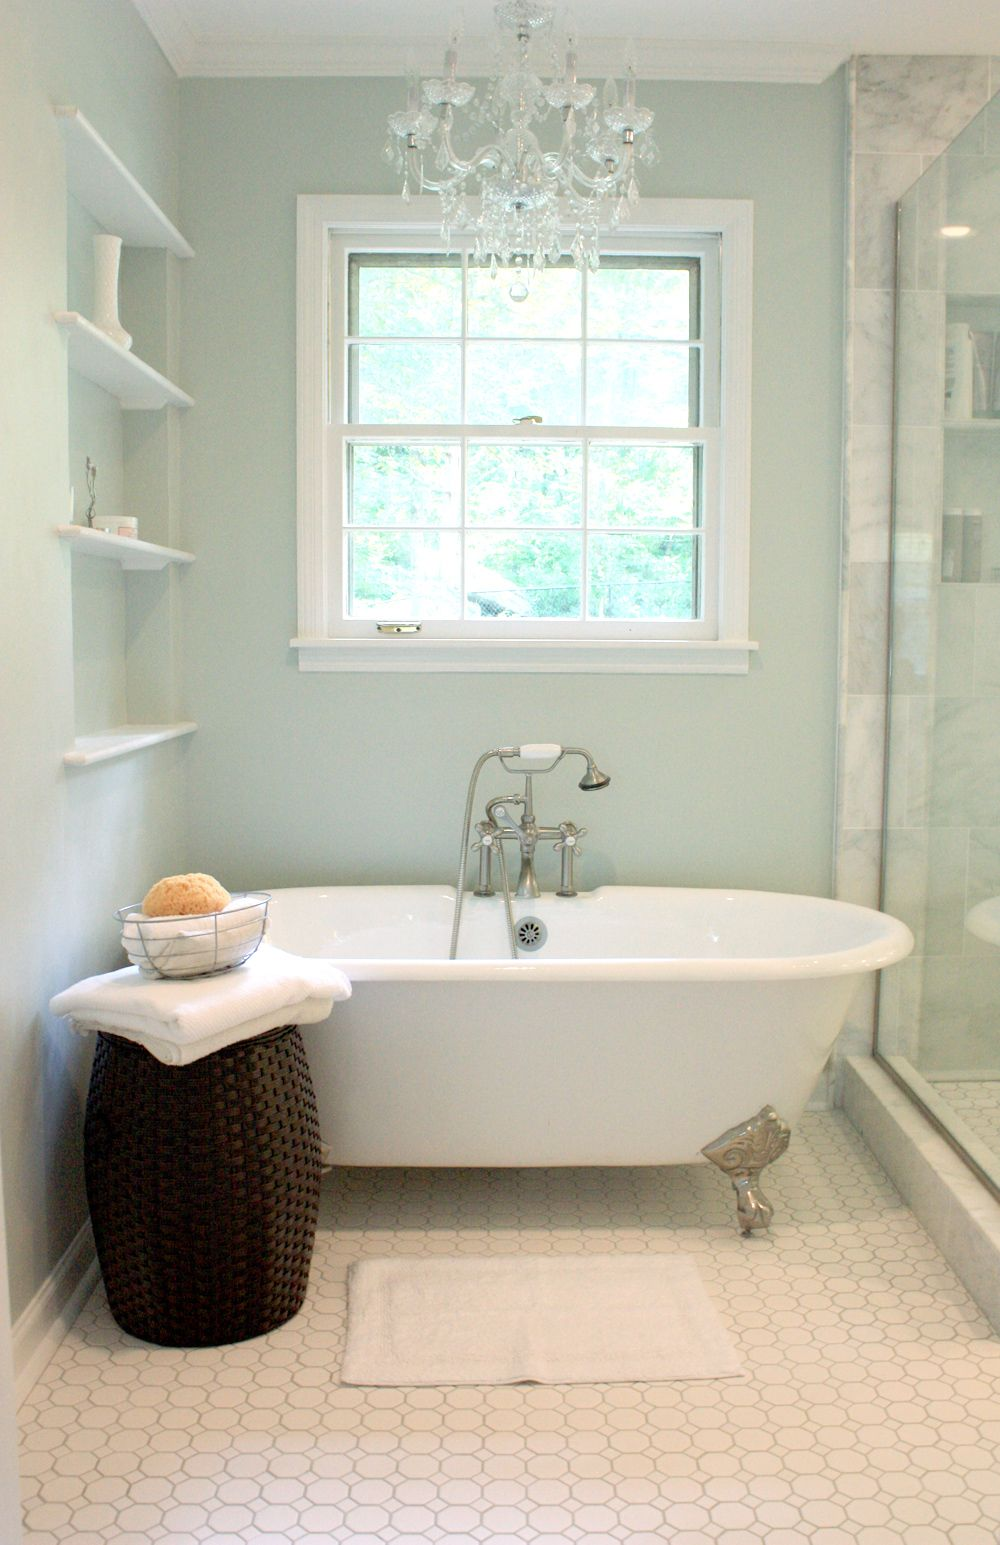 Sea Salt By Sherwin Williams This Is The Color I M Using For My Downstairs Powder Room Remodel